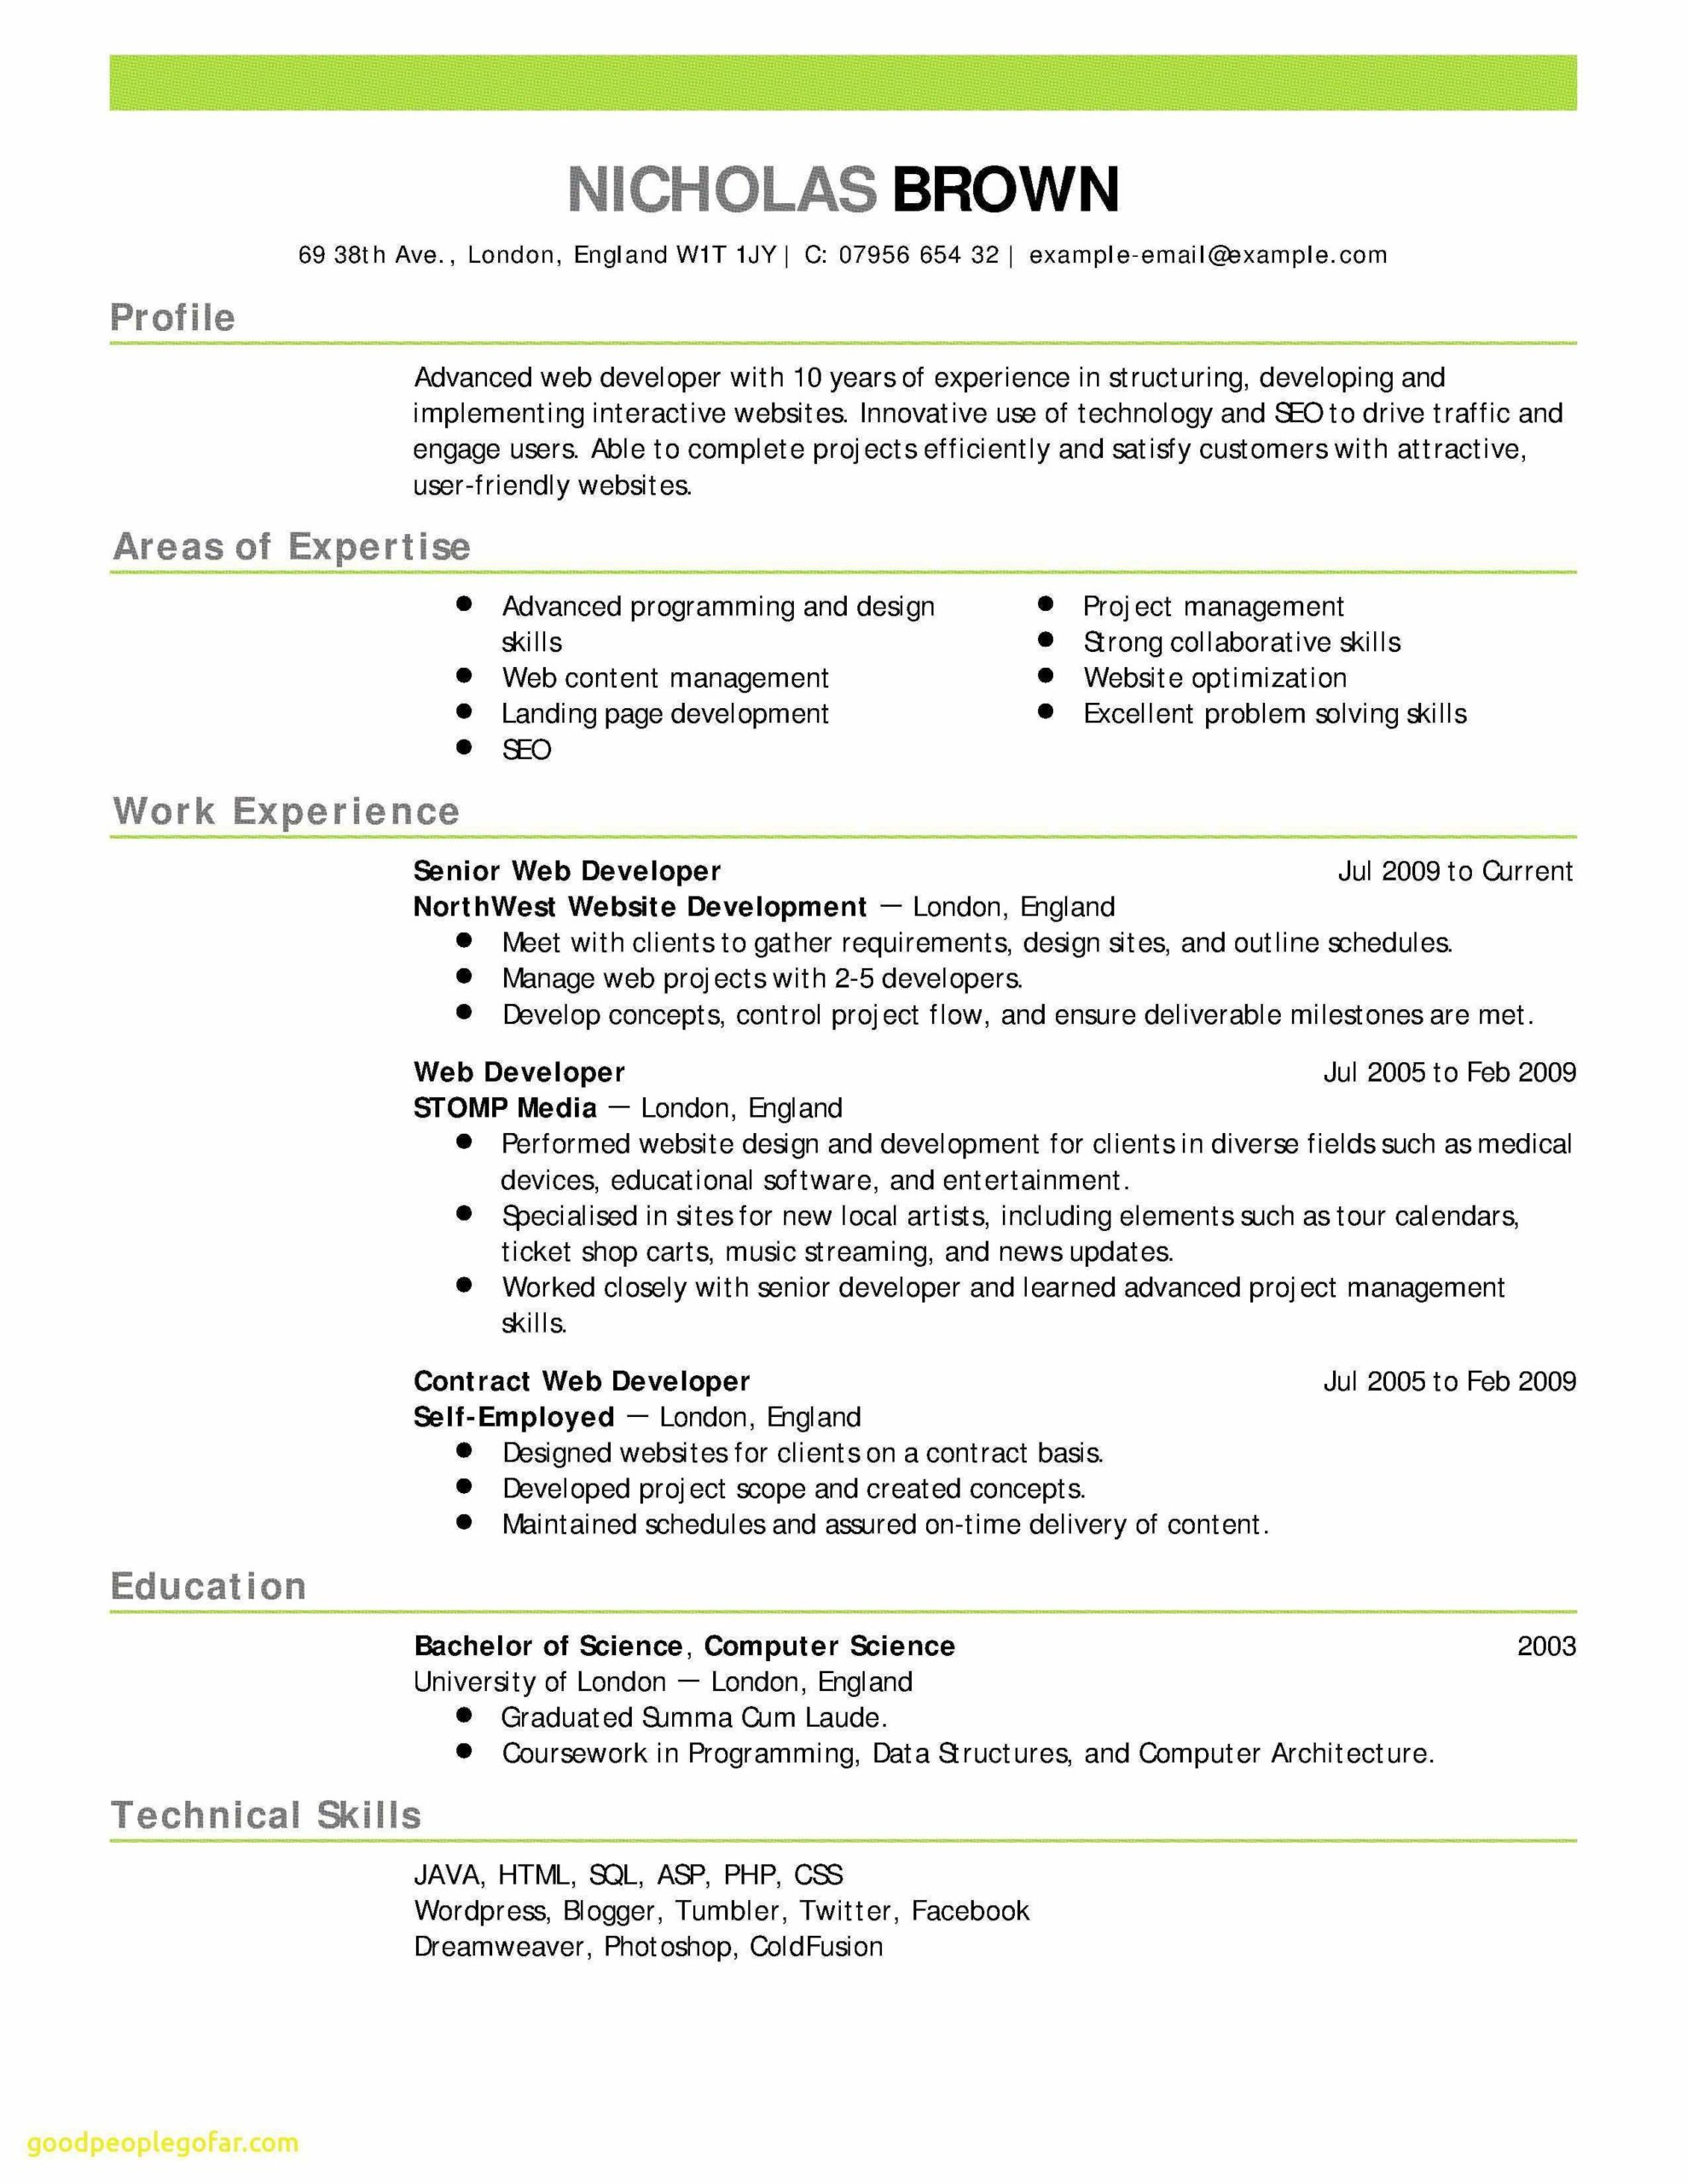 resume examples developer good teaching job appian business architect sample film Resume Appian Developer Resume